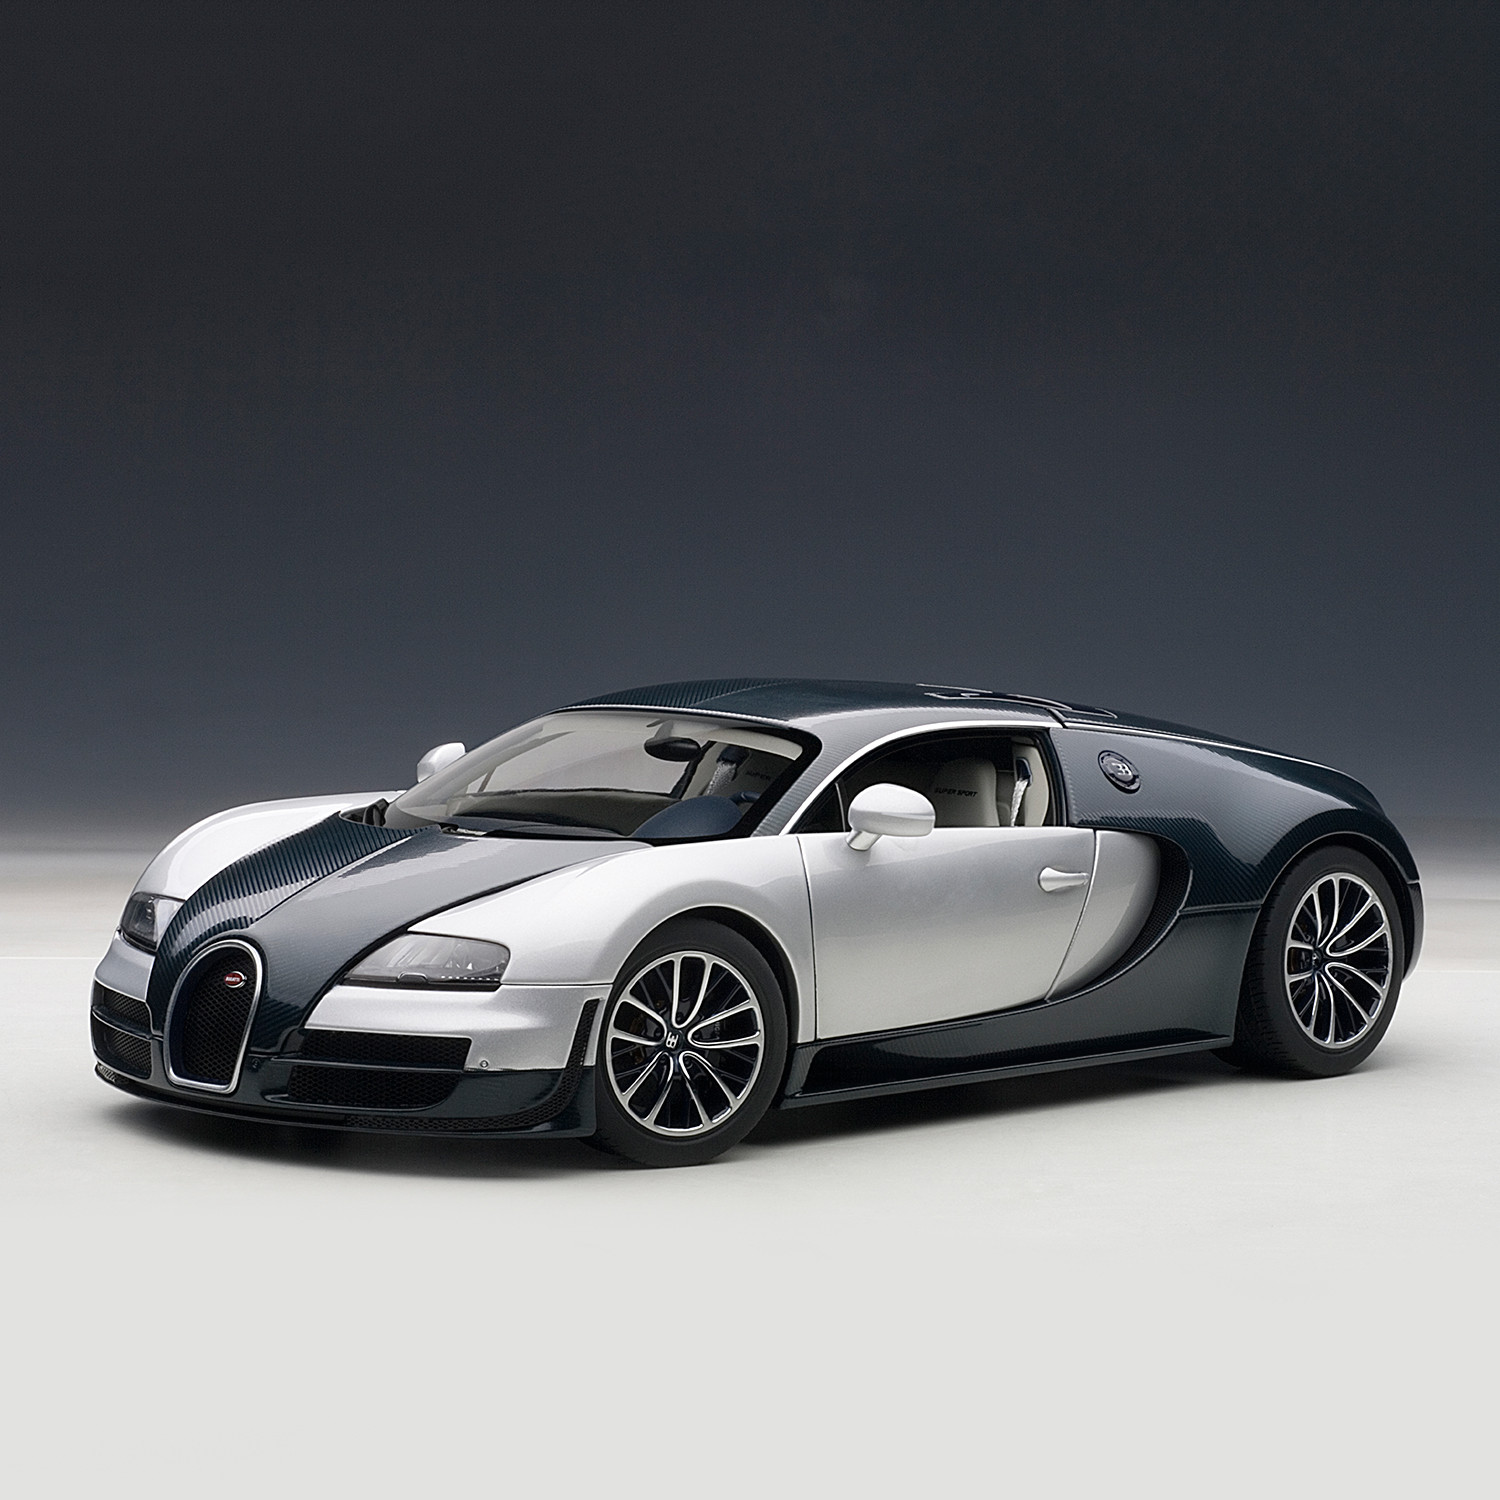 Bugatti Veyron Super Sport Black Orange